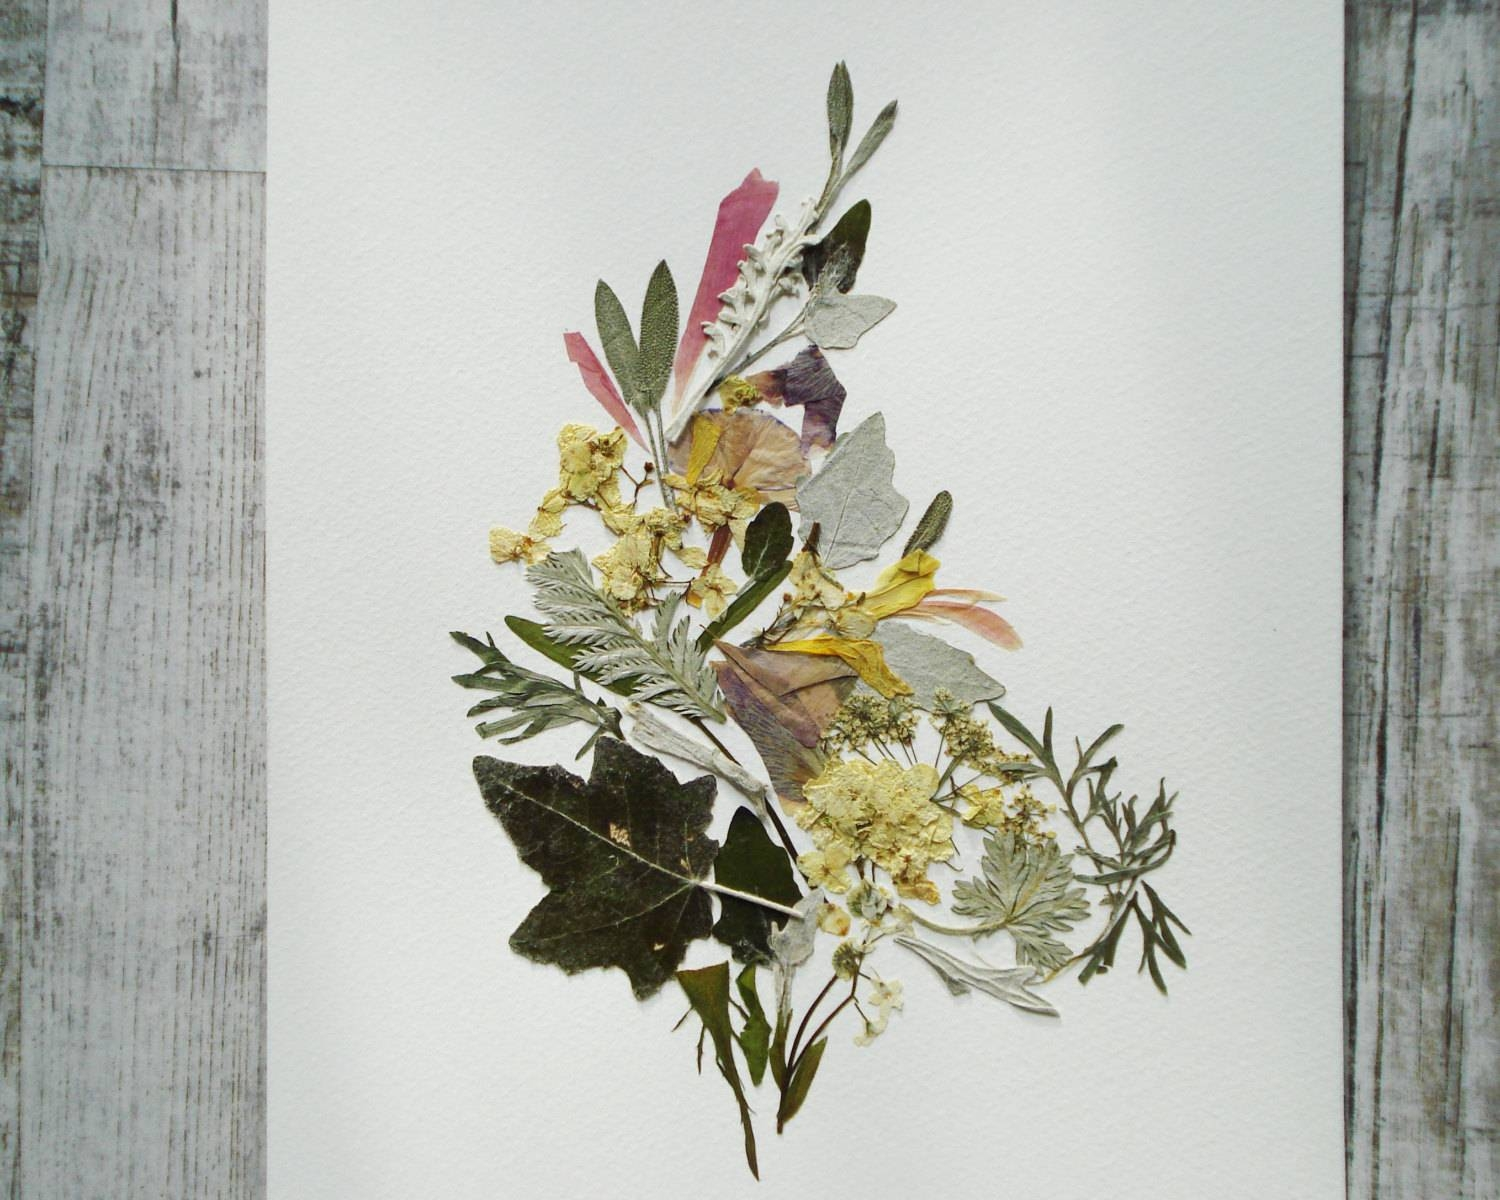 Original Pressed Flowers Artwork Herbarium Art Botanical Art Regarding Most Up To Date Floral & Plant Wall Art (View 21 of 25)